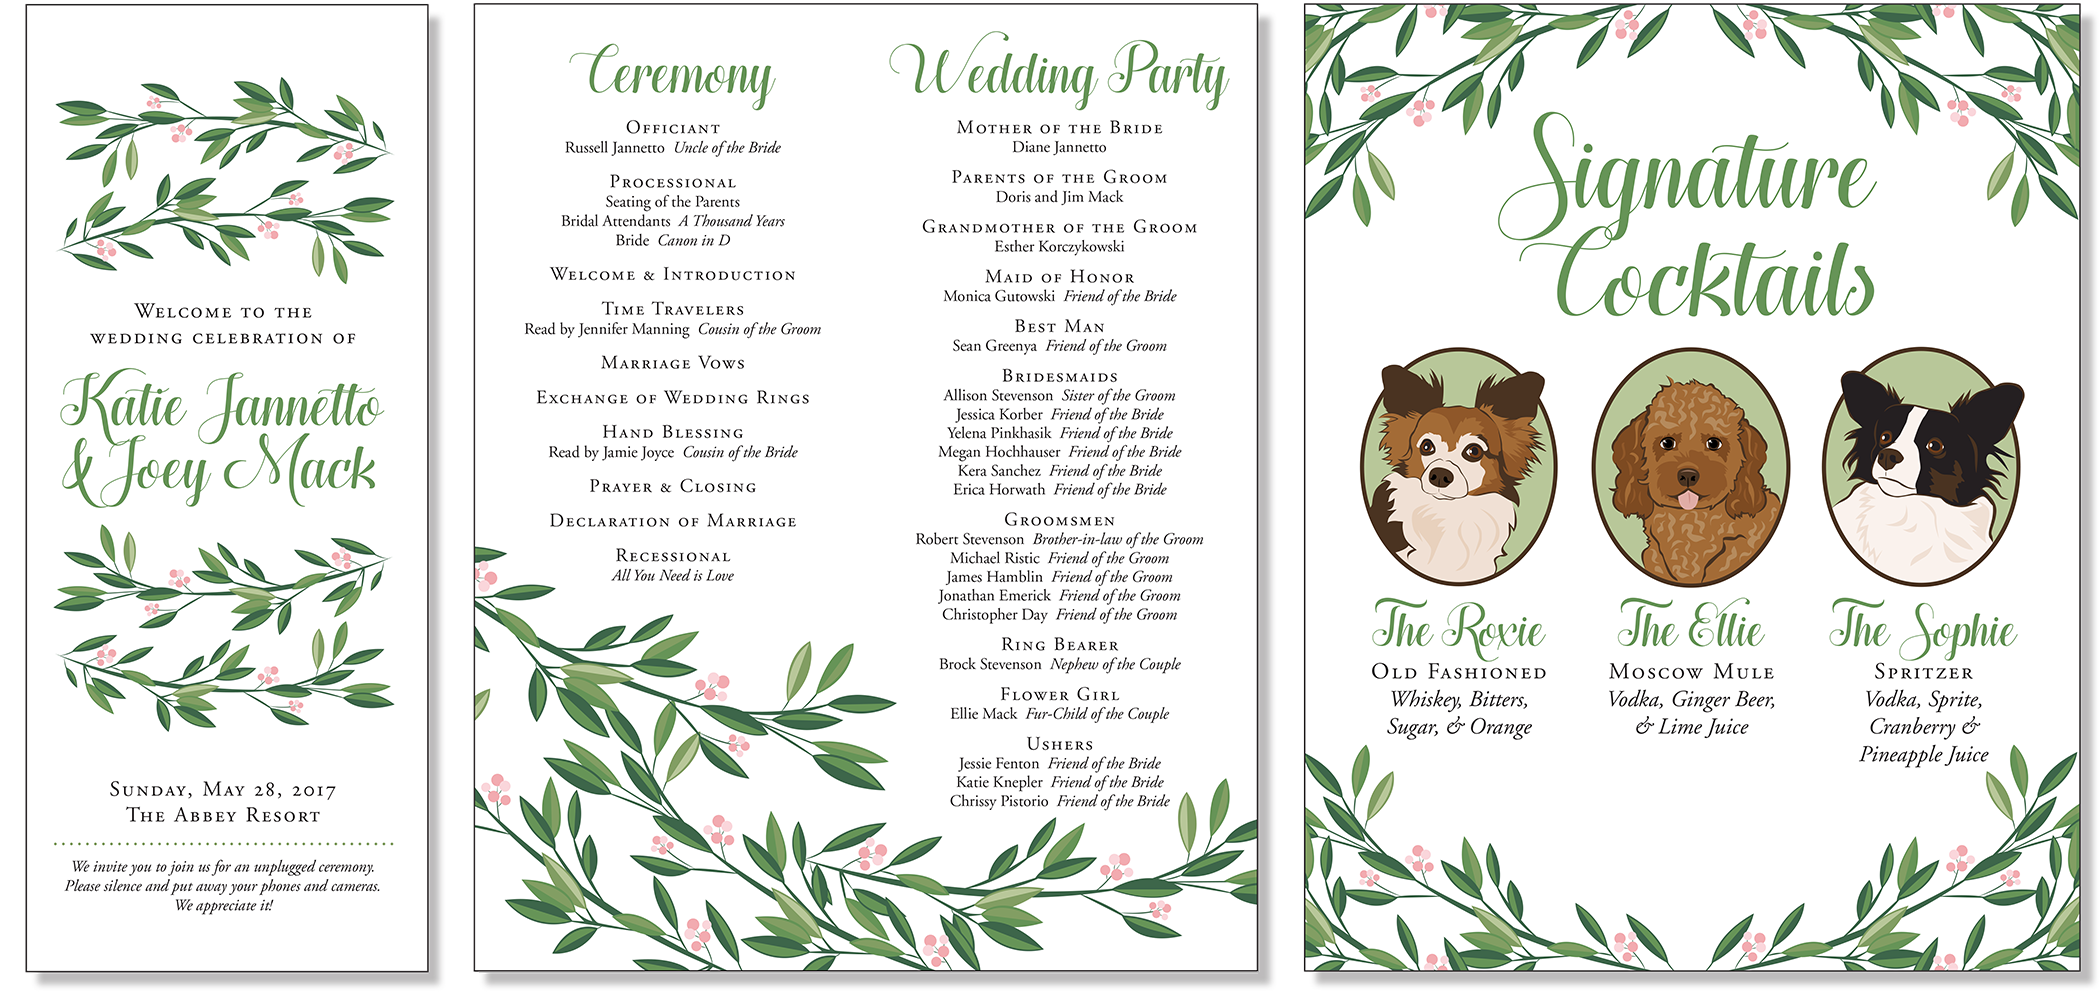 Katie & Joey wanted something simple & elegant with a foliage theme. I adore this foliage pattern and how they wanted to incorporate their dogs on the Signature Cocktails poster!  Foliage and dog illustrations created in Adobe Illustrator, text set in Adobe InDesign.   Left: Ceremony Program (Cover) Middle: Ceremony Program (Inside) Right: Signature Cocktails Poster